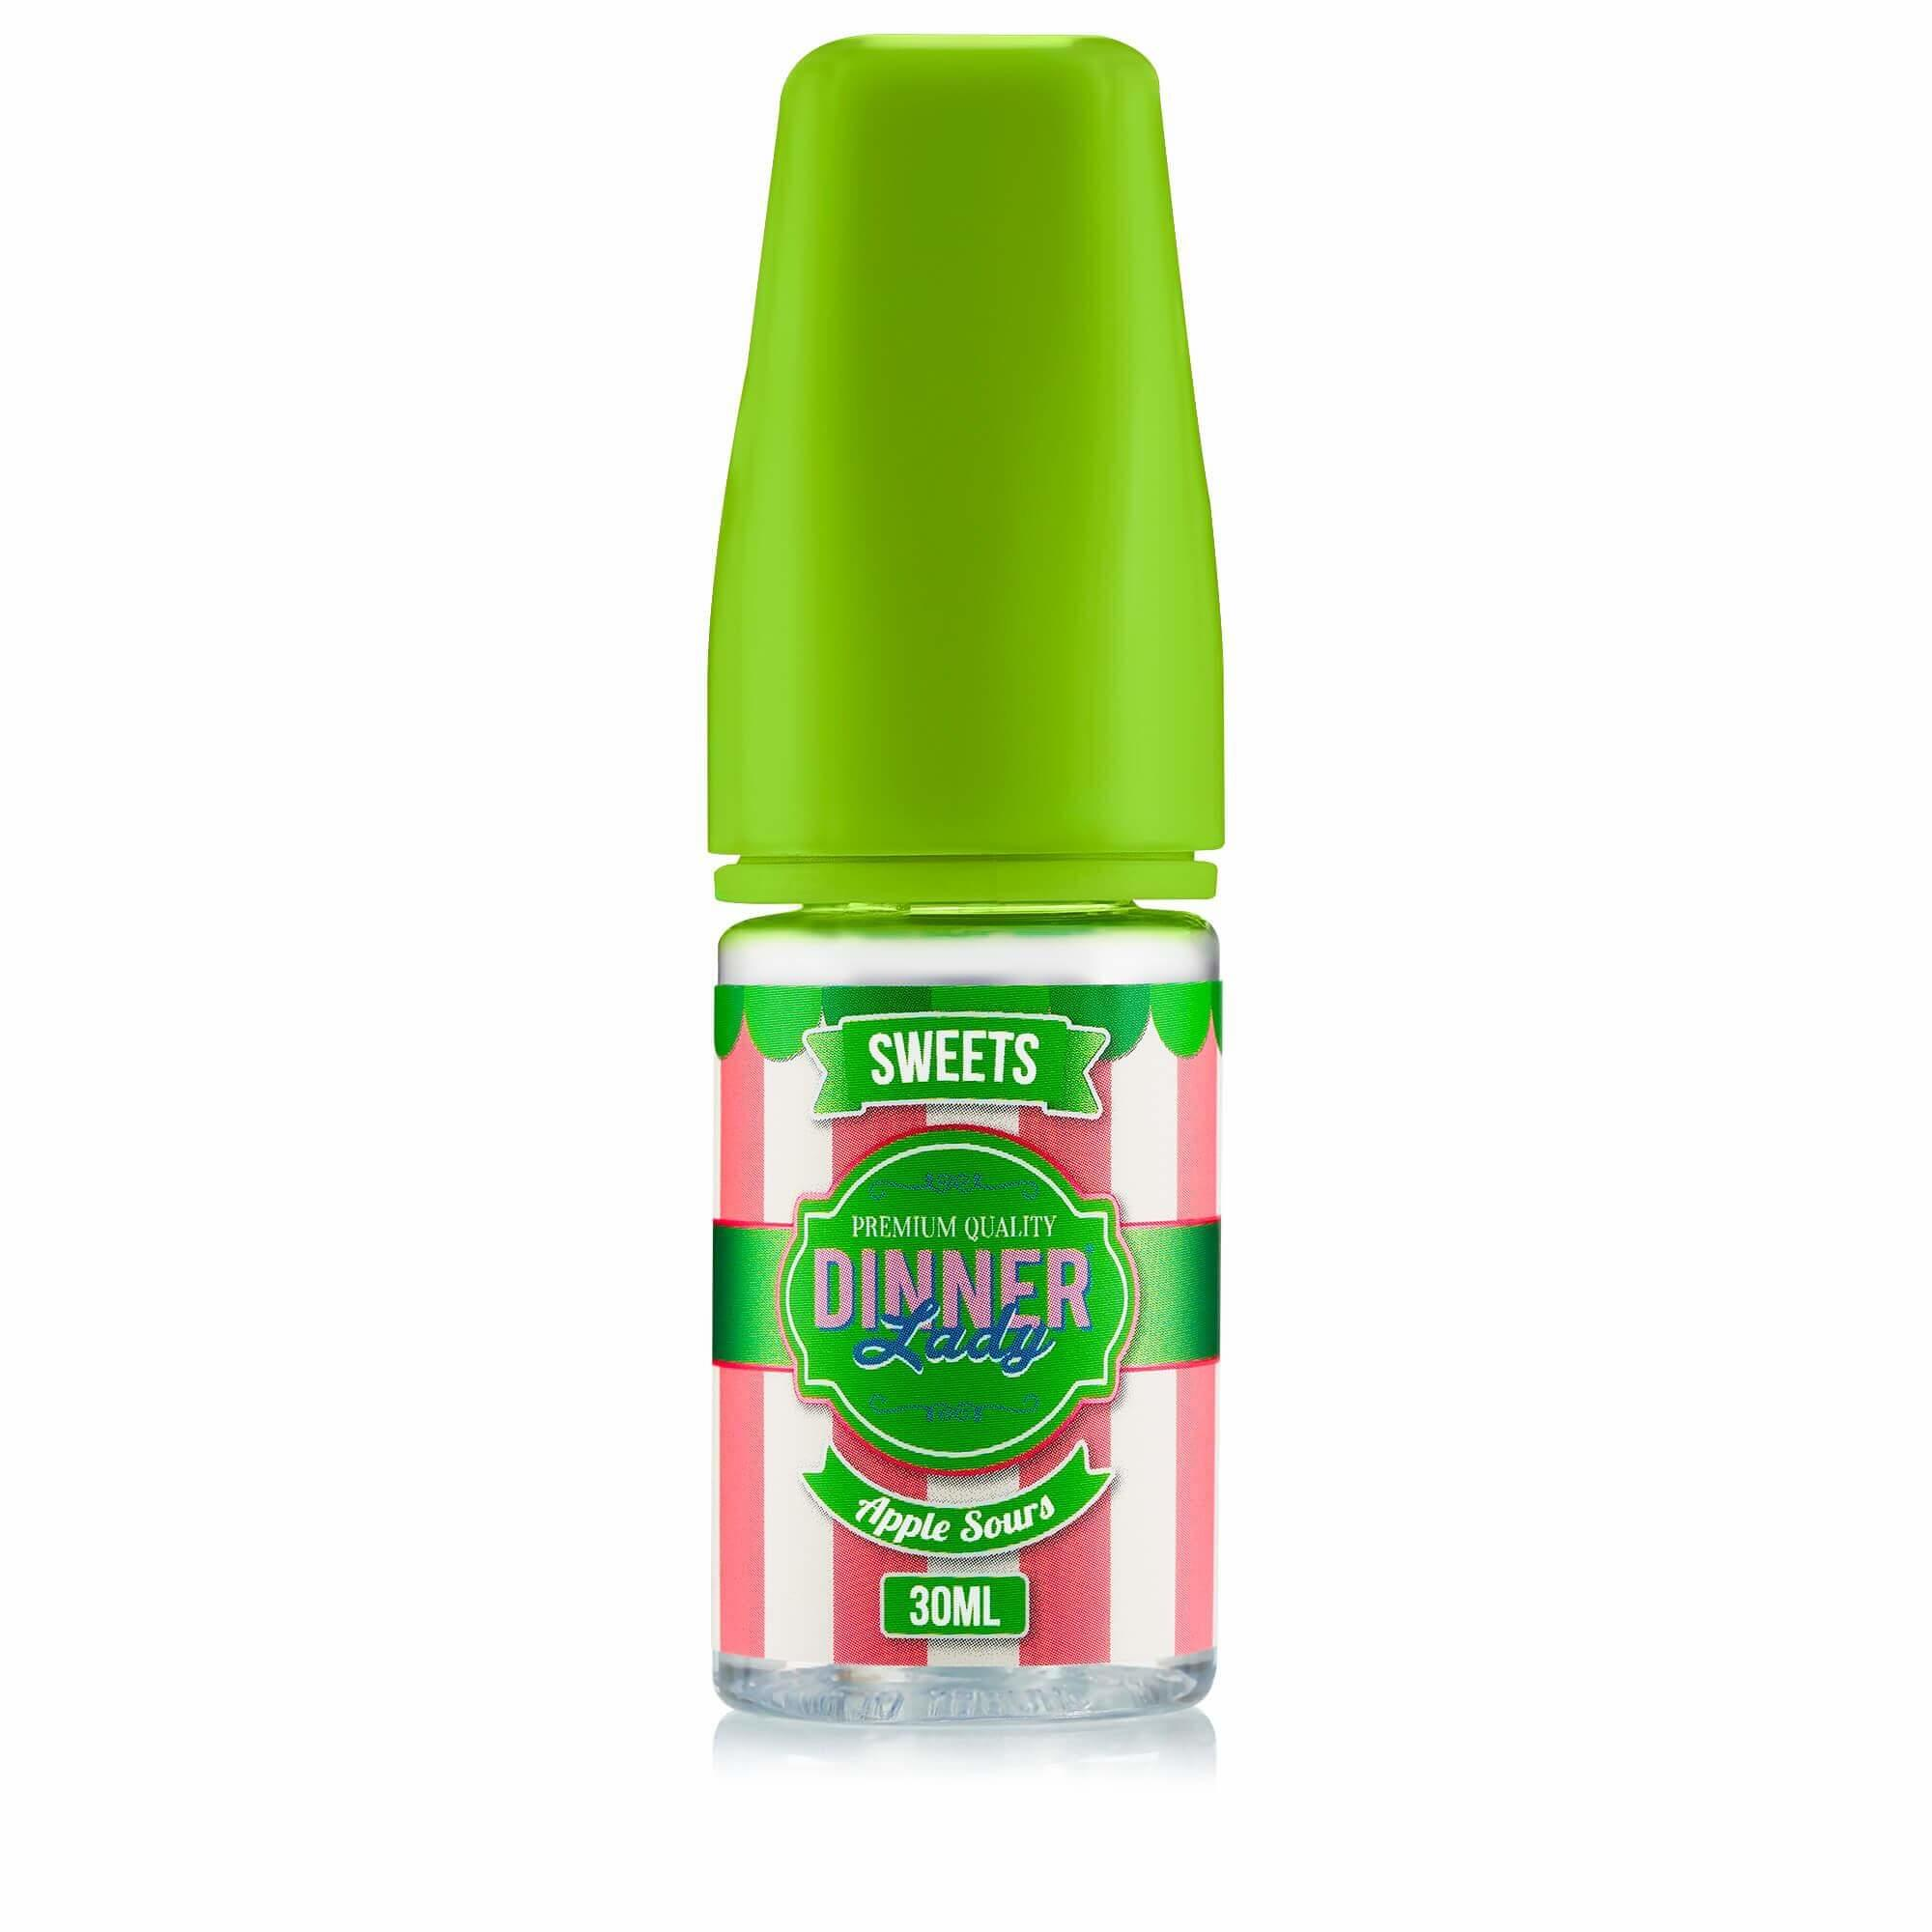 Apple Sours Concentrate Dinner Lady 30ml